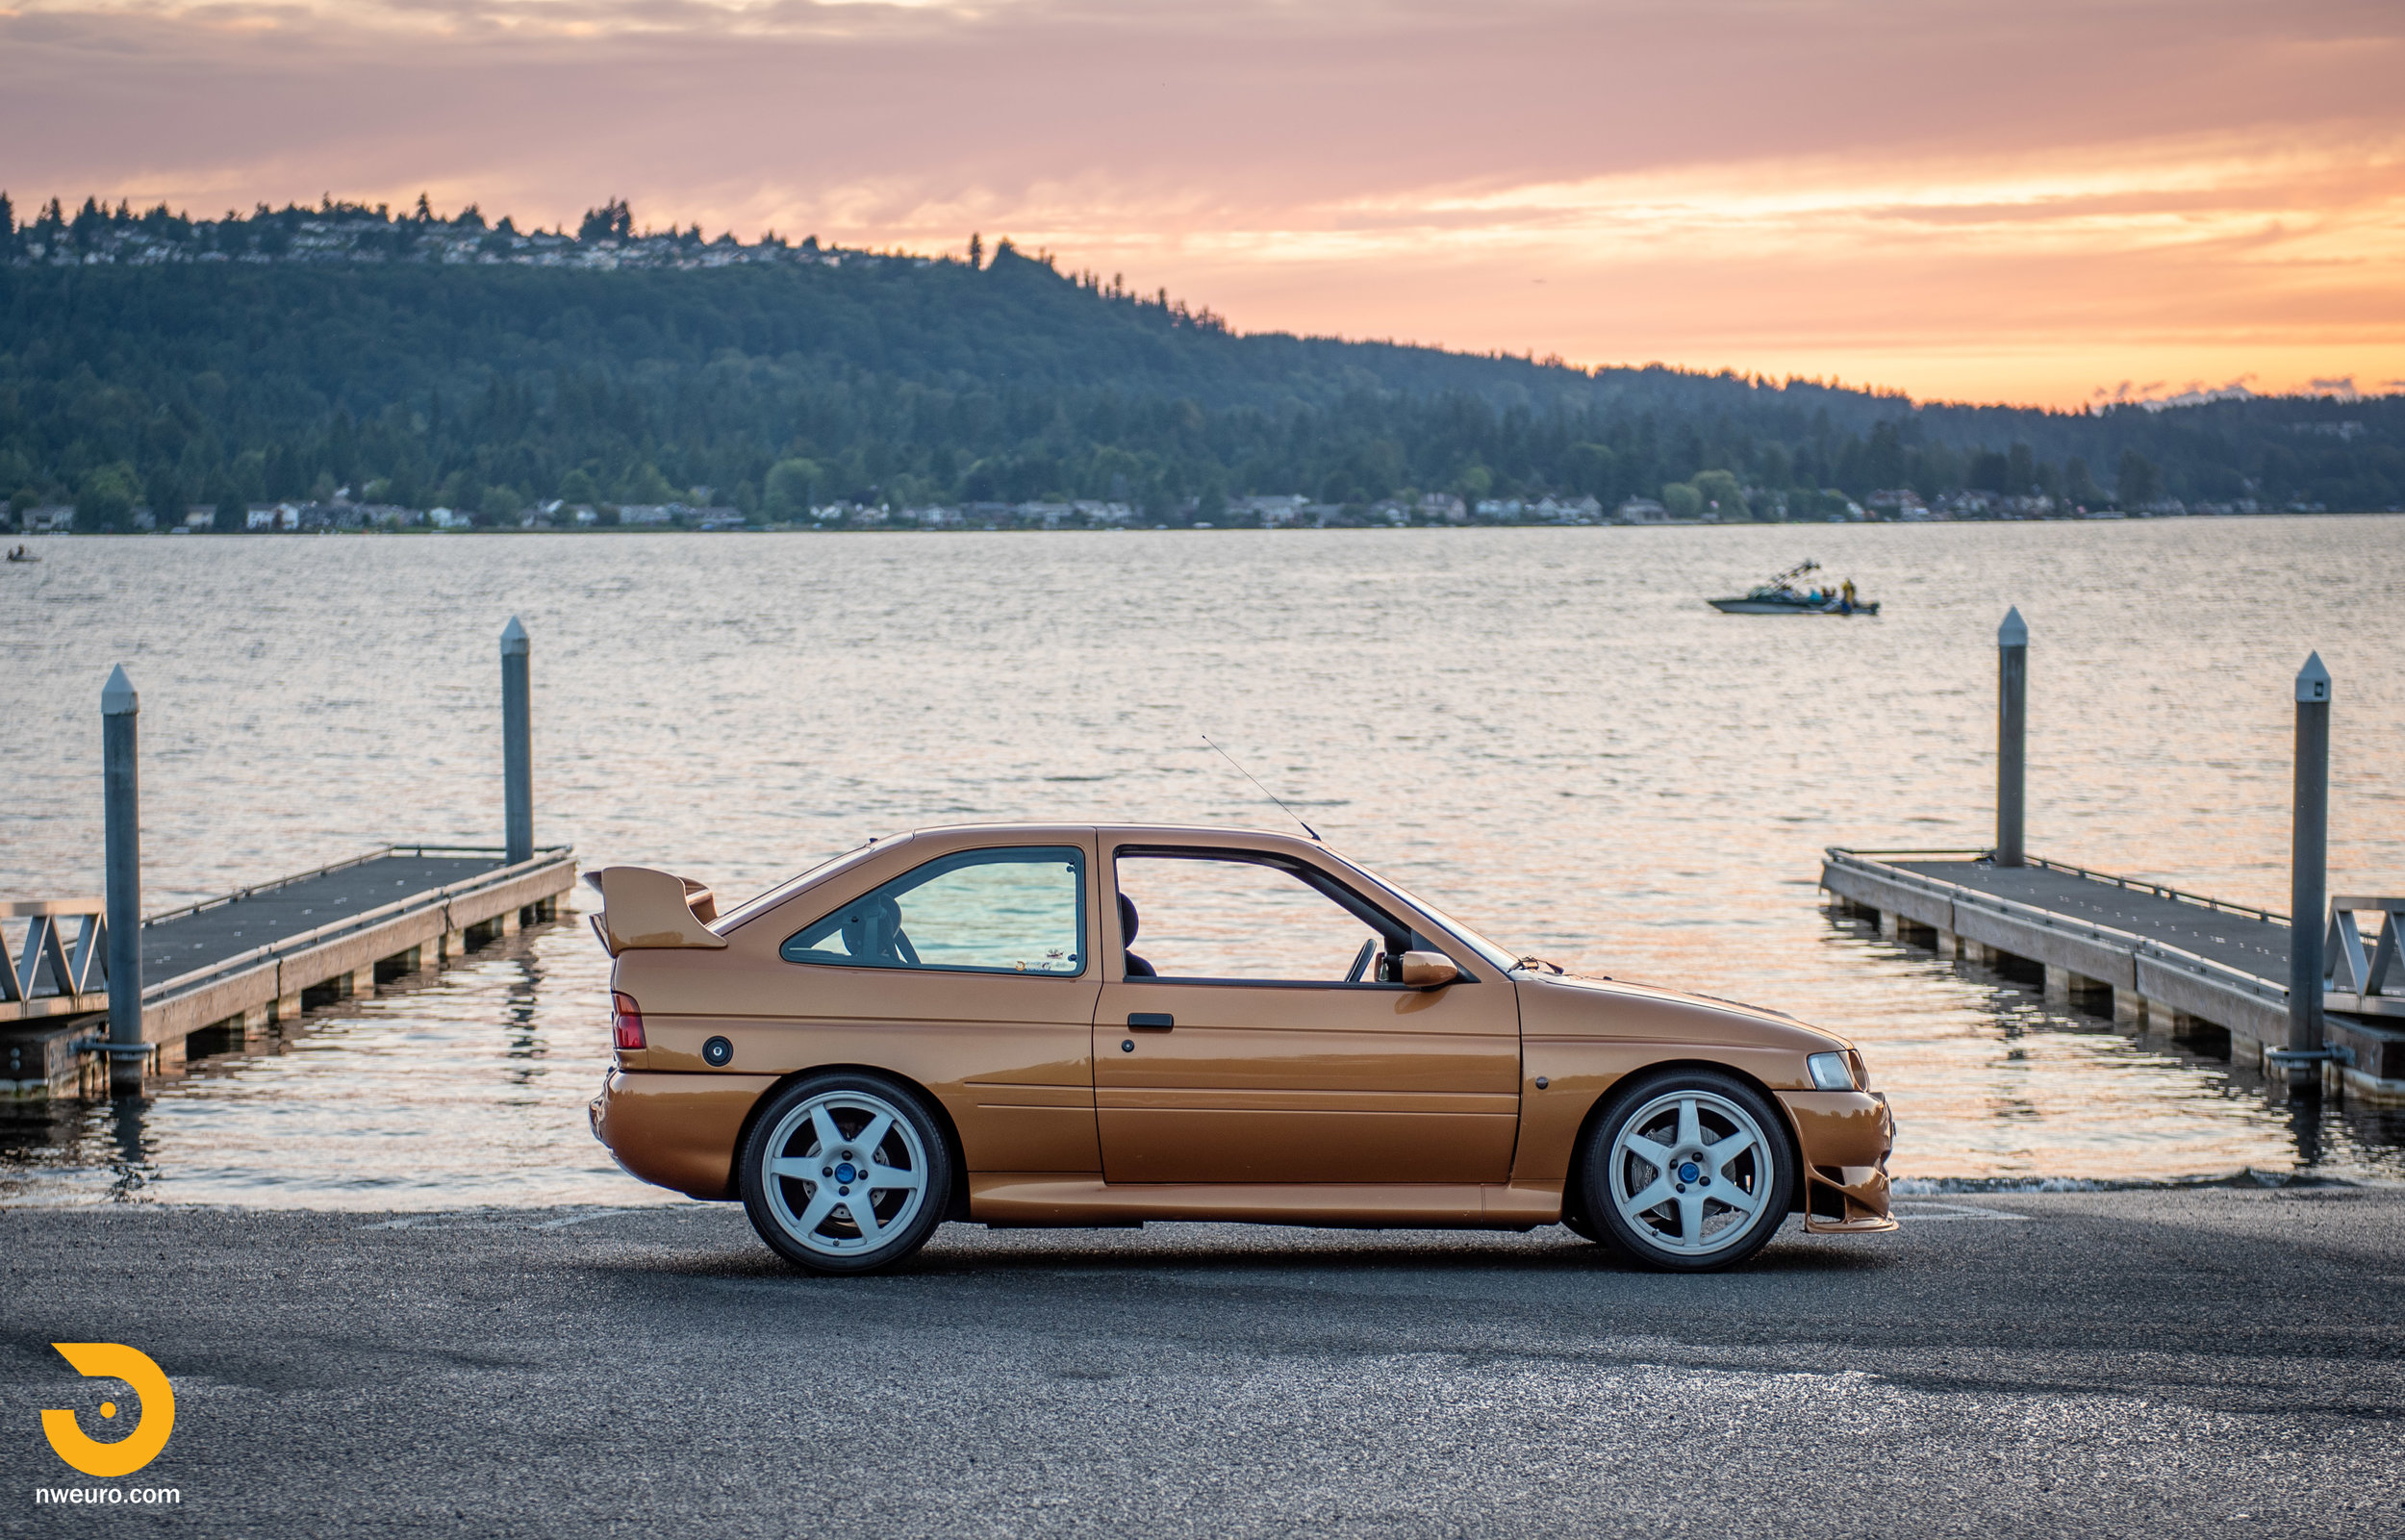 1995 Ford Escort Cosworth RS Gold-61.jpg